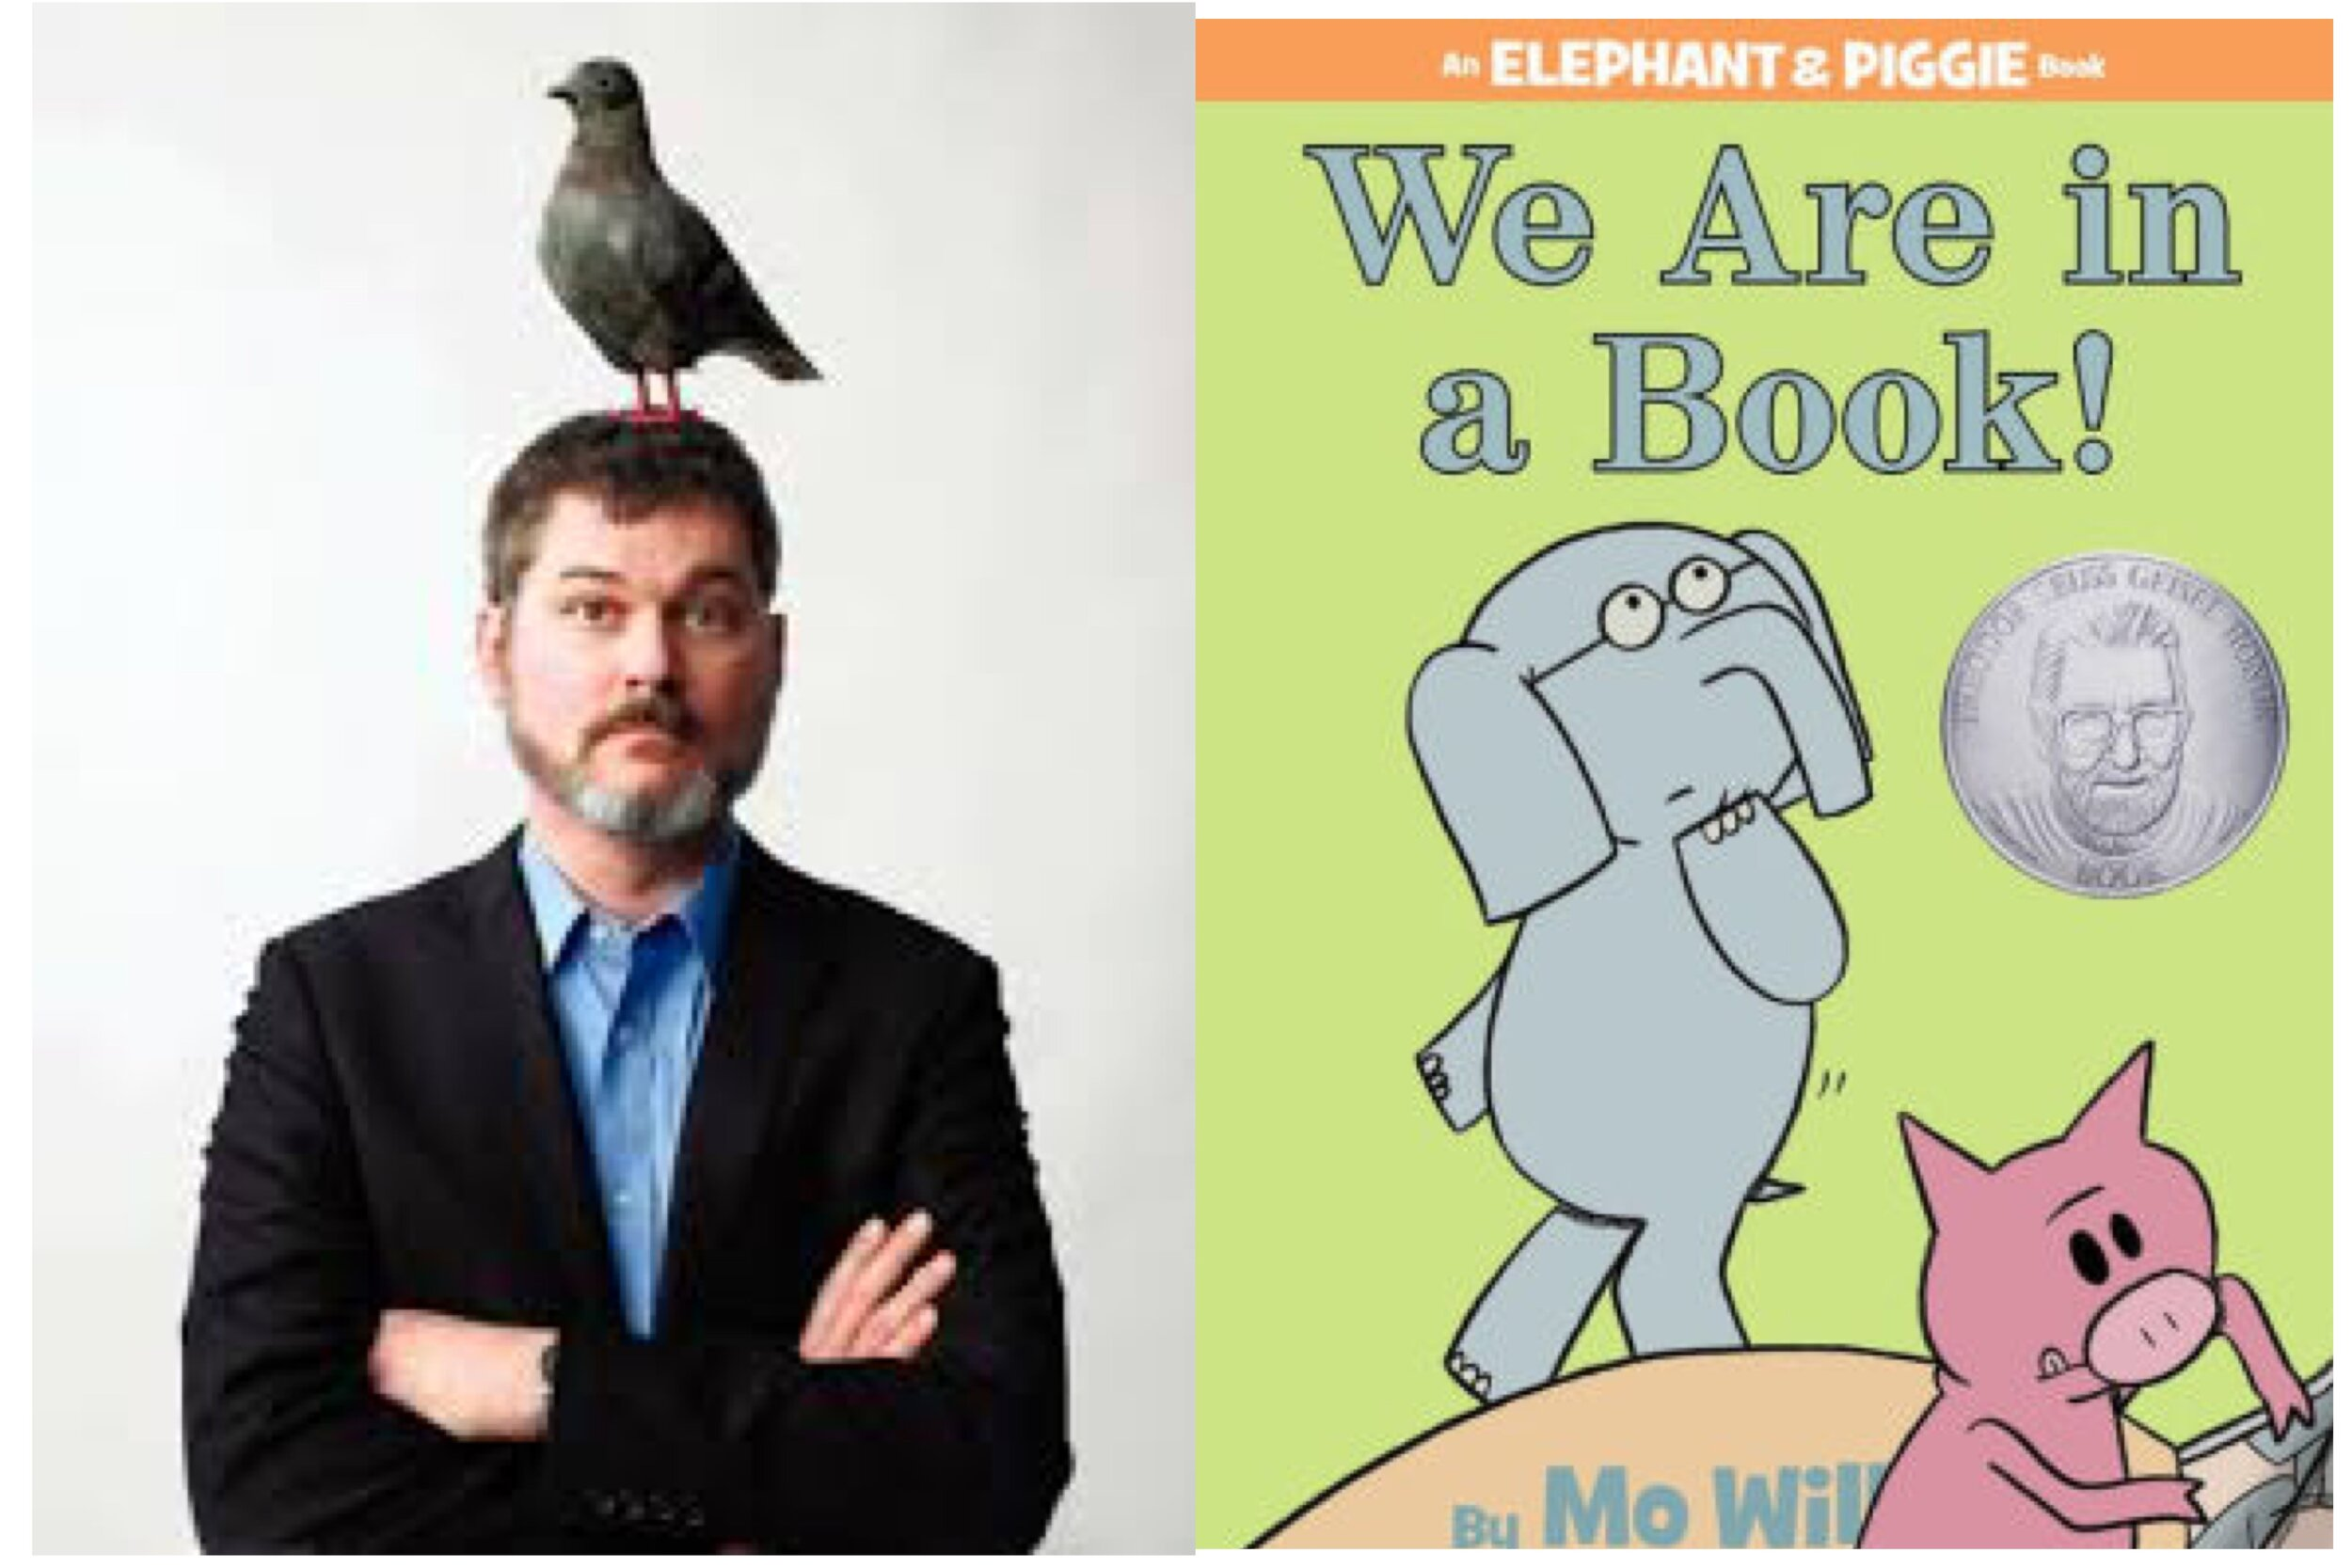 Mo Willems Is Hosting An Election Night Democracy Doodle